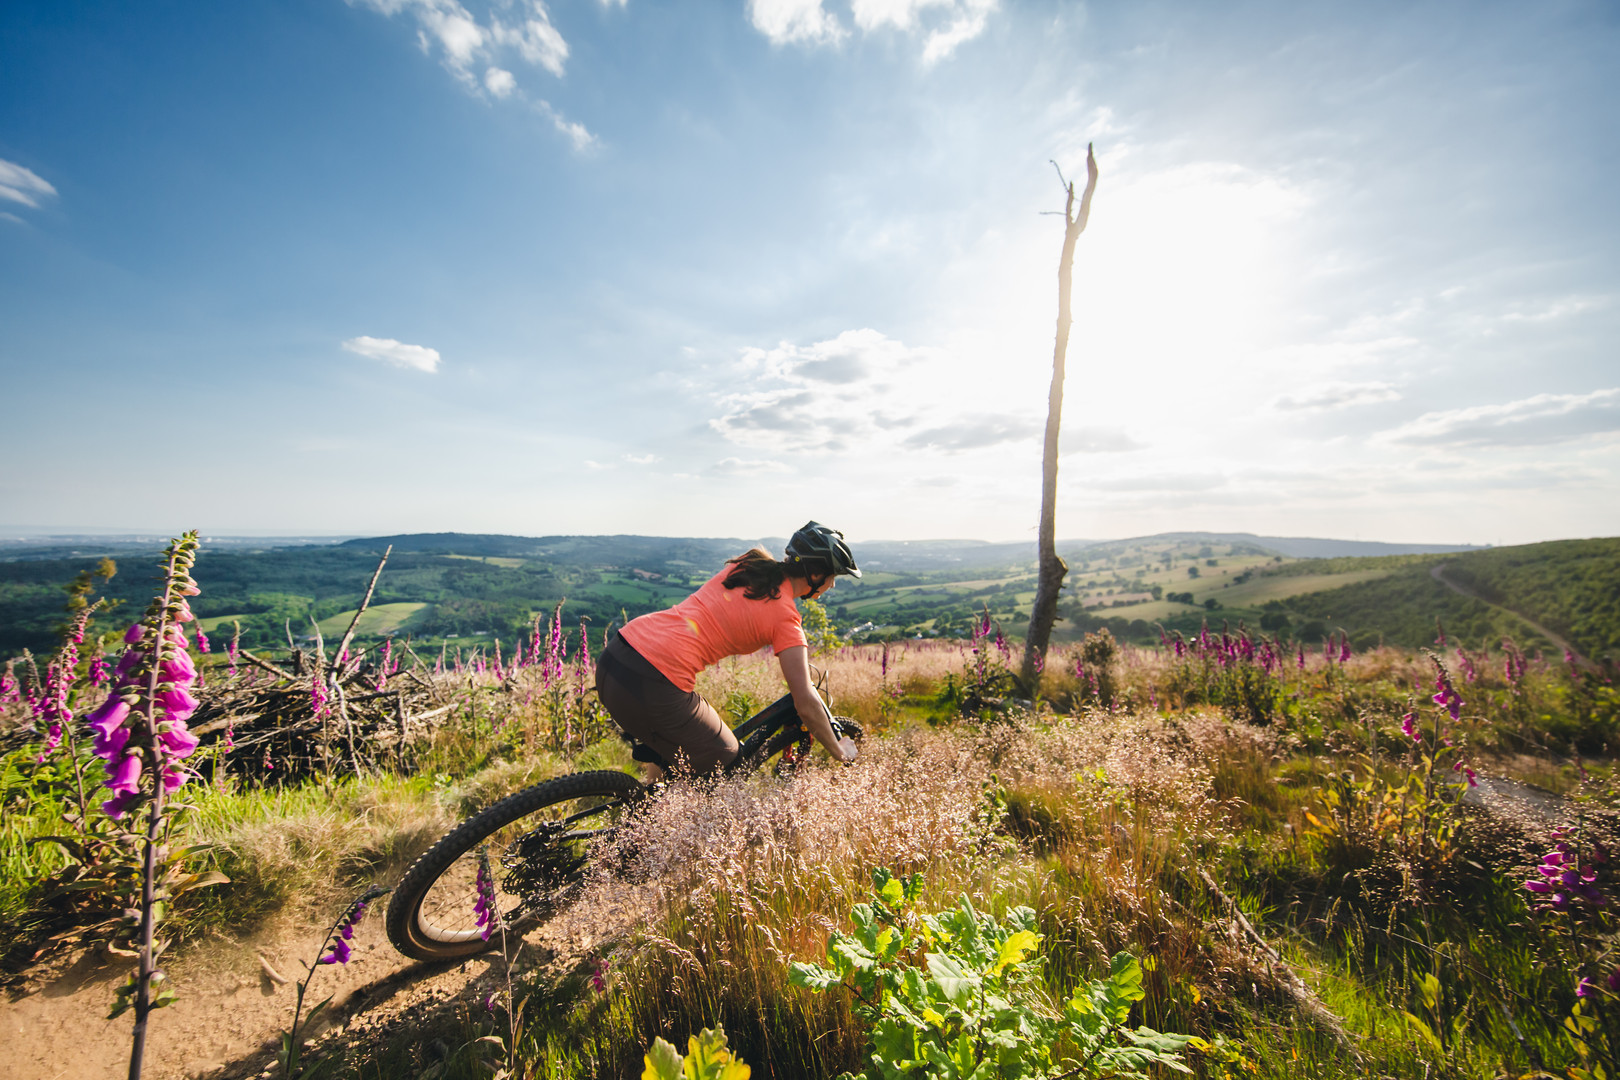 Manon Carpenter riding in the South Wales Valleys